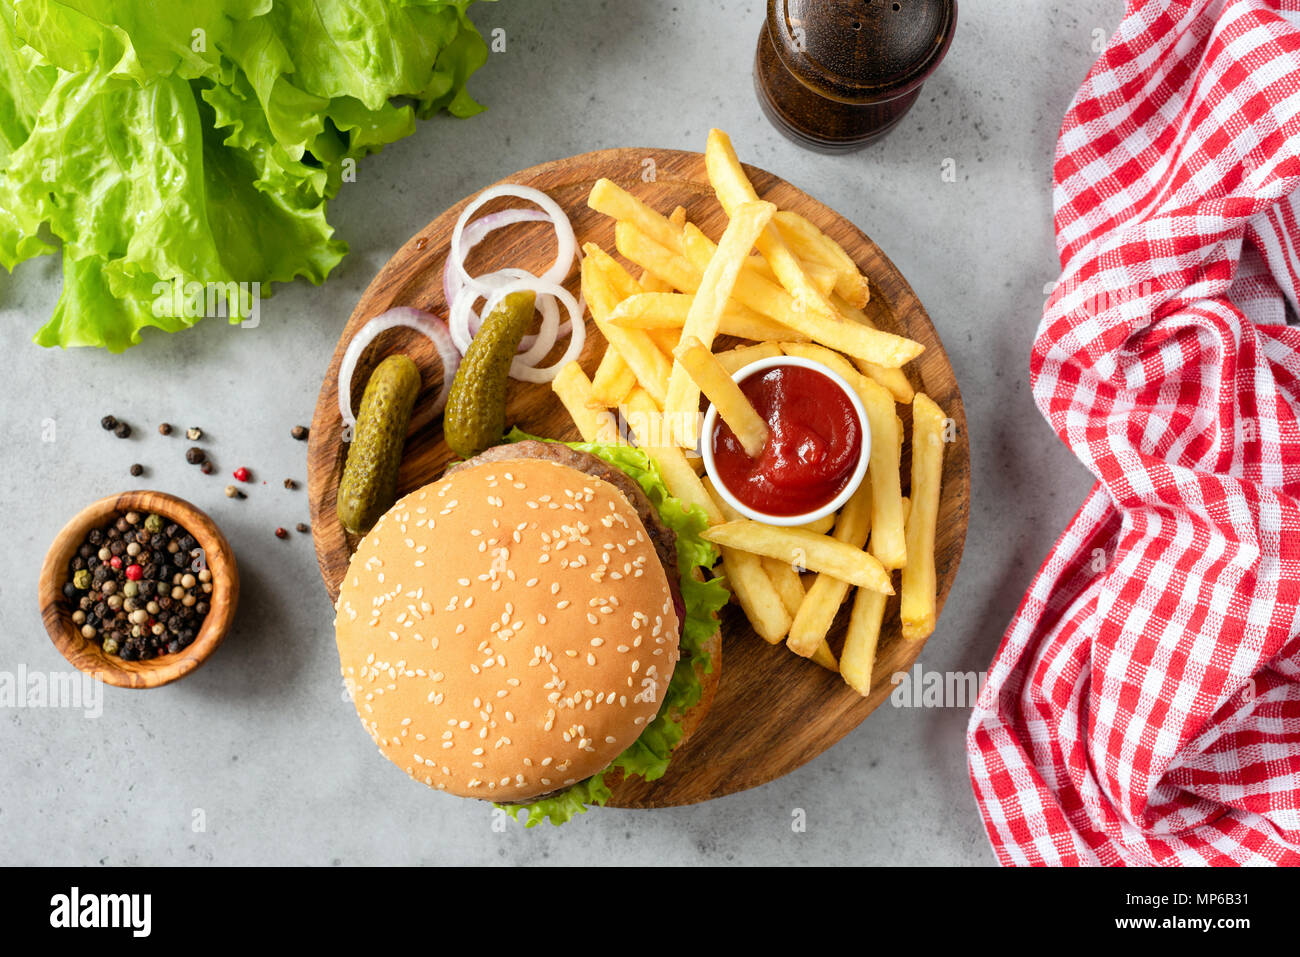 Burger with sesame, fries, pickles and lettuce salad. Top view of homemade beef burger with fries and pickles. Horizontal Stock Photo